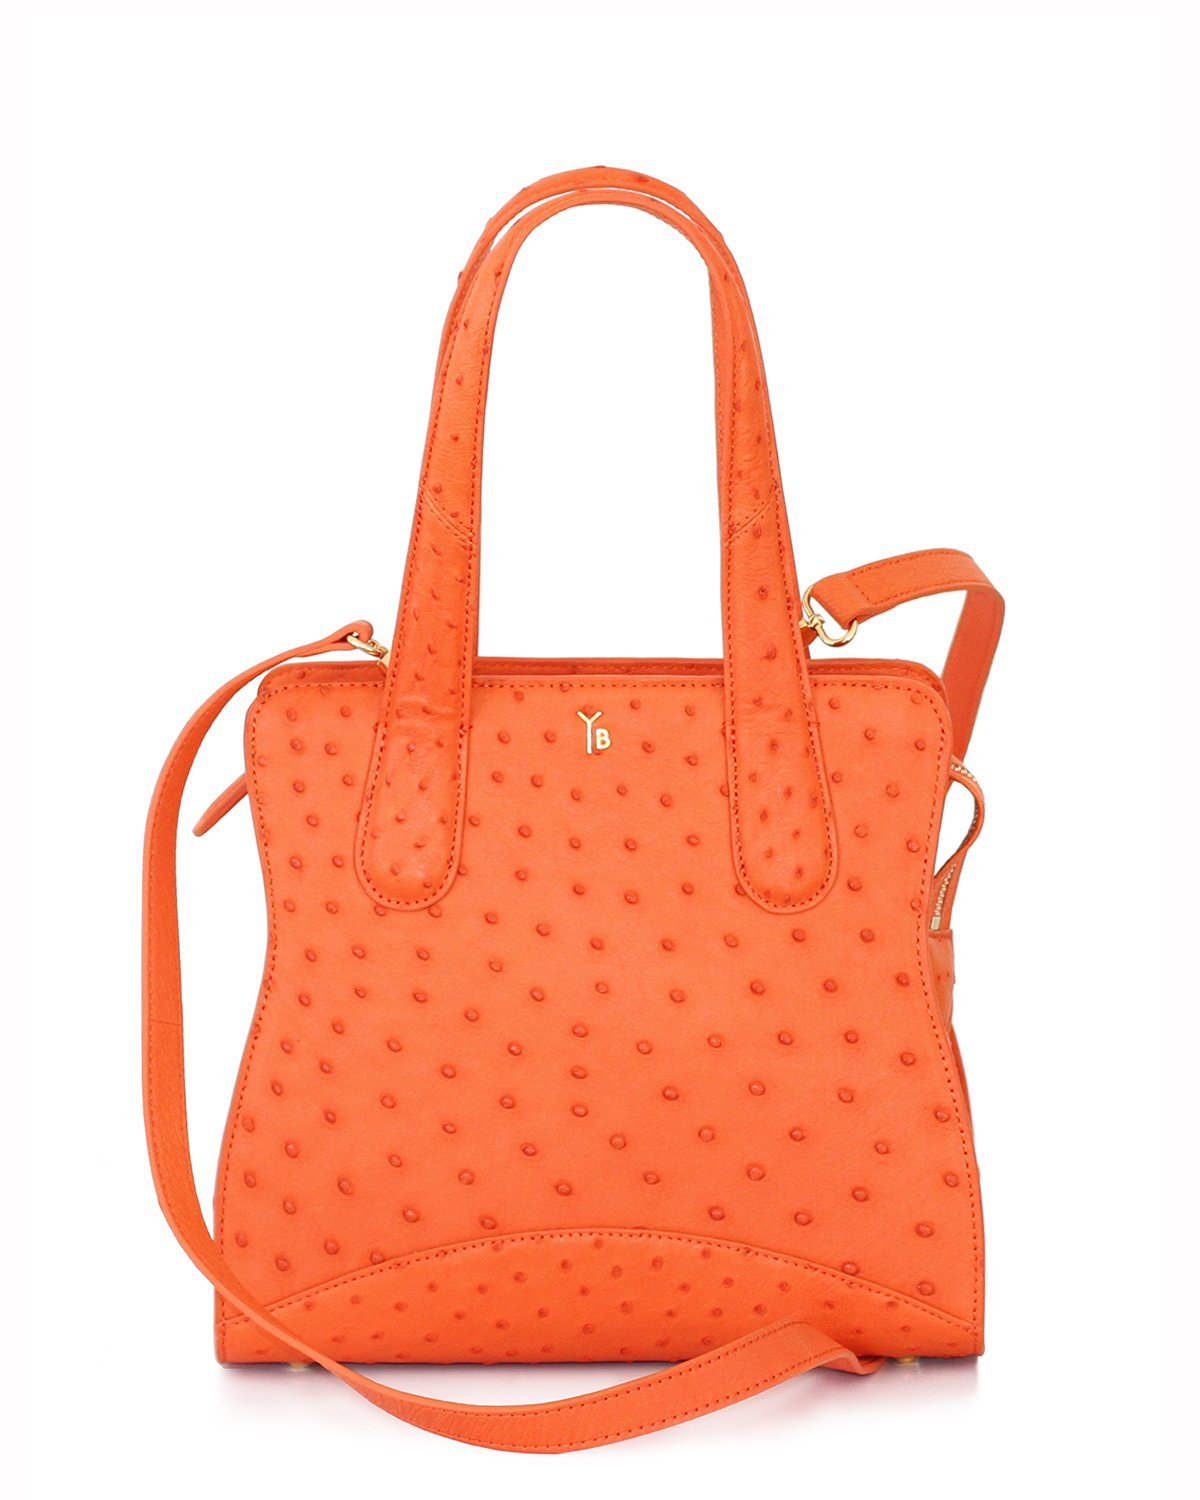 True Orange Ostrich Genuine Sustainable Adam Small Tote Yara Bashoor with Long Shoulder Strap